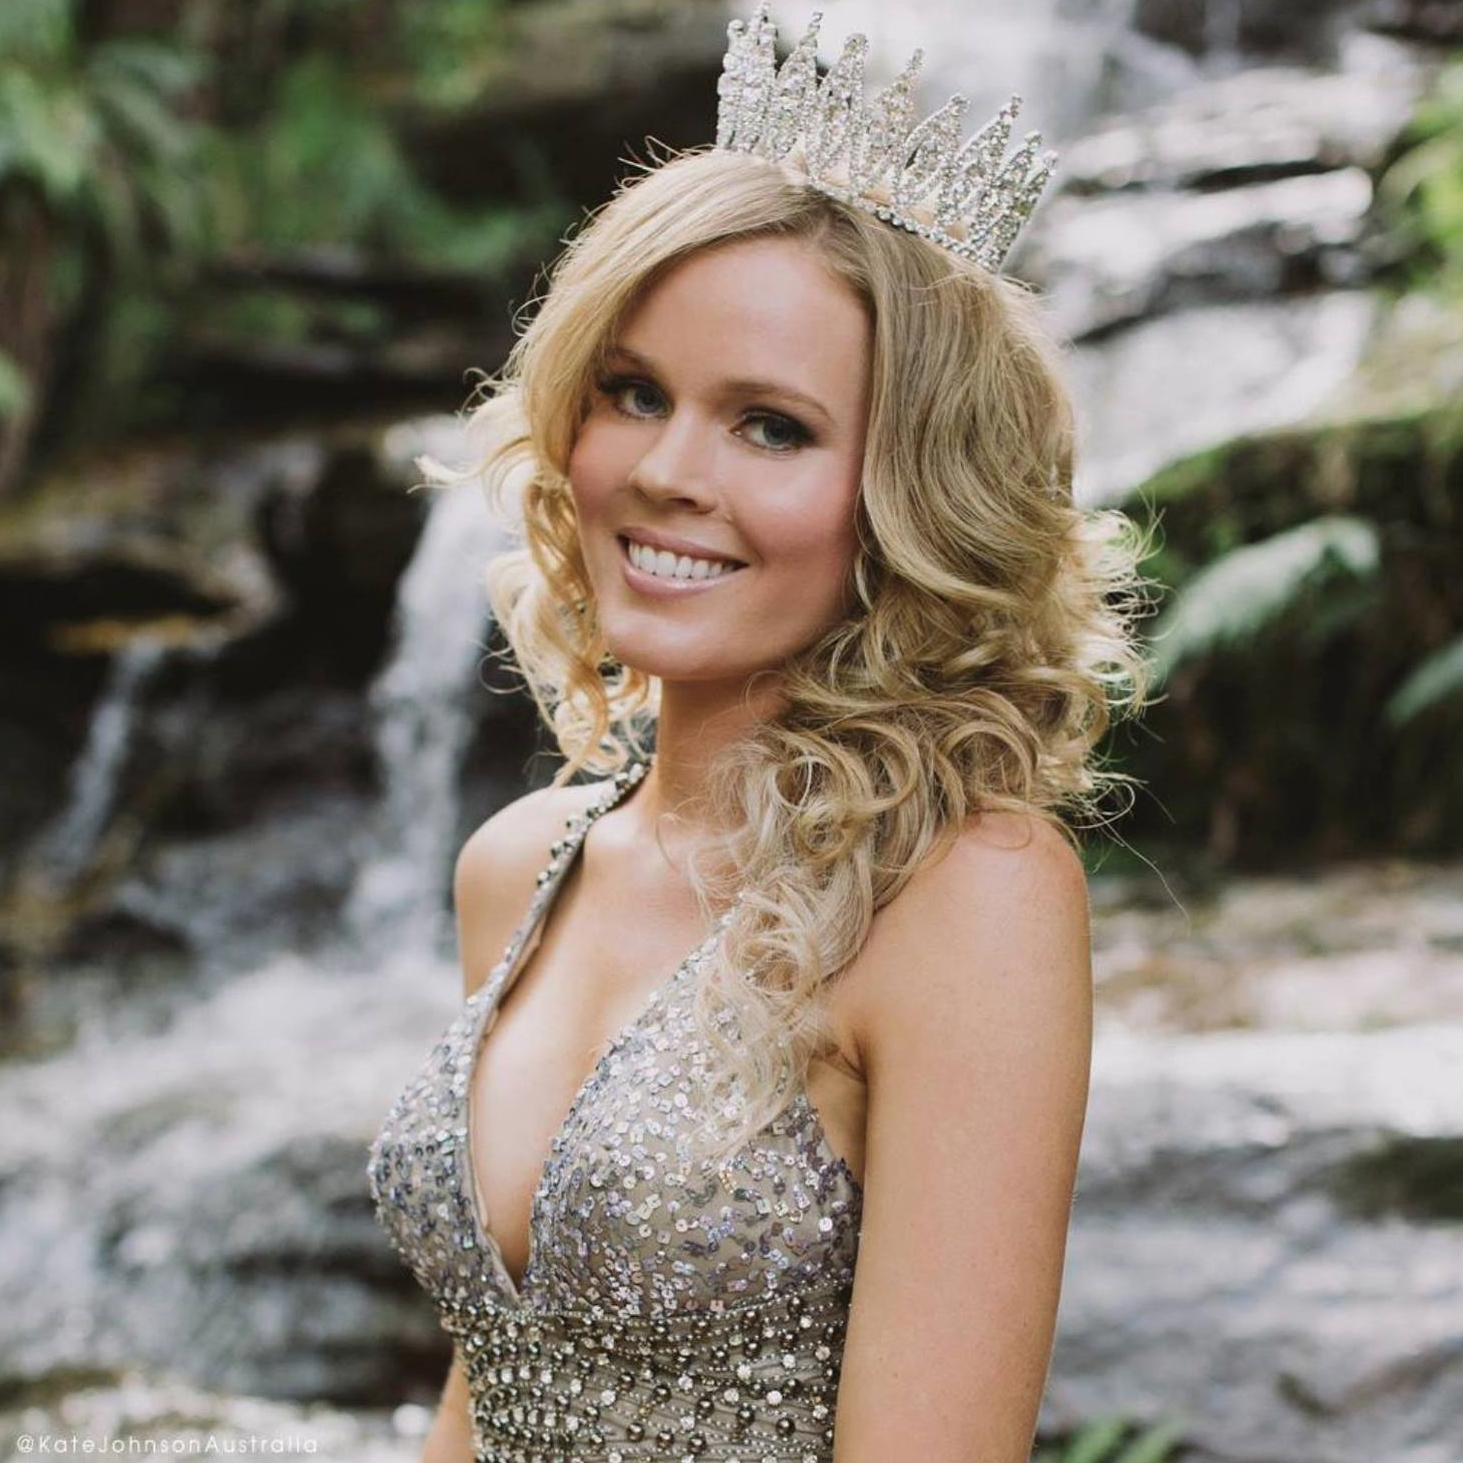 Kate Johnson Mrs 2014.jpg